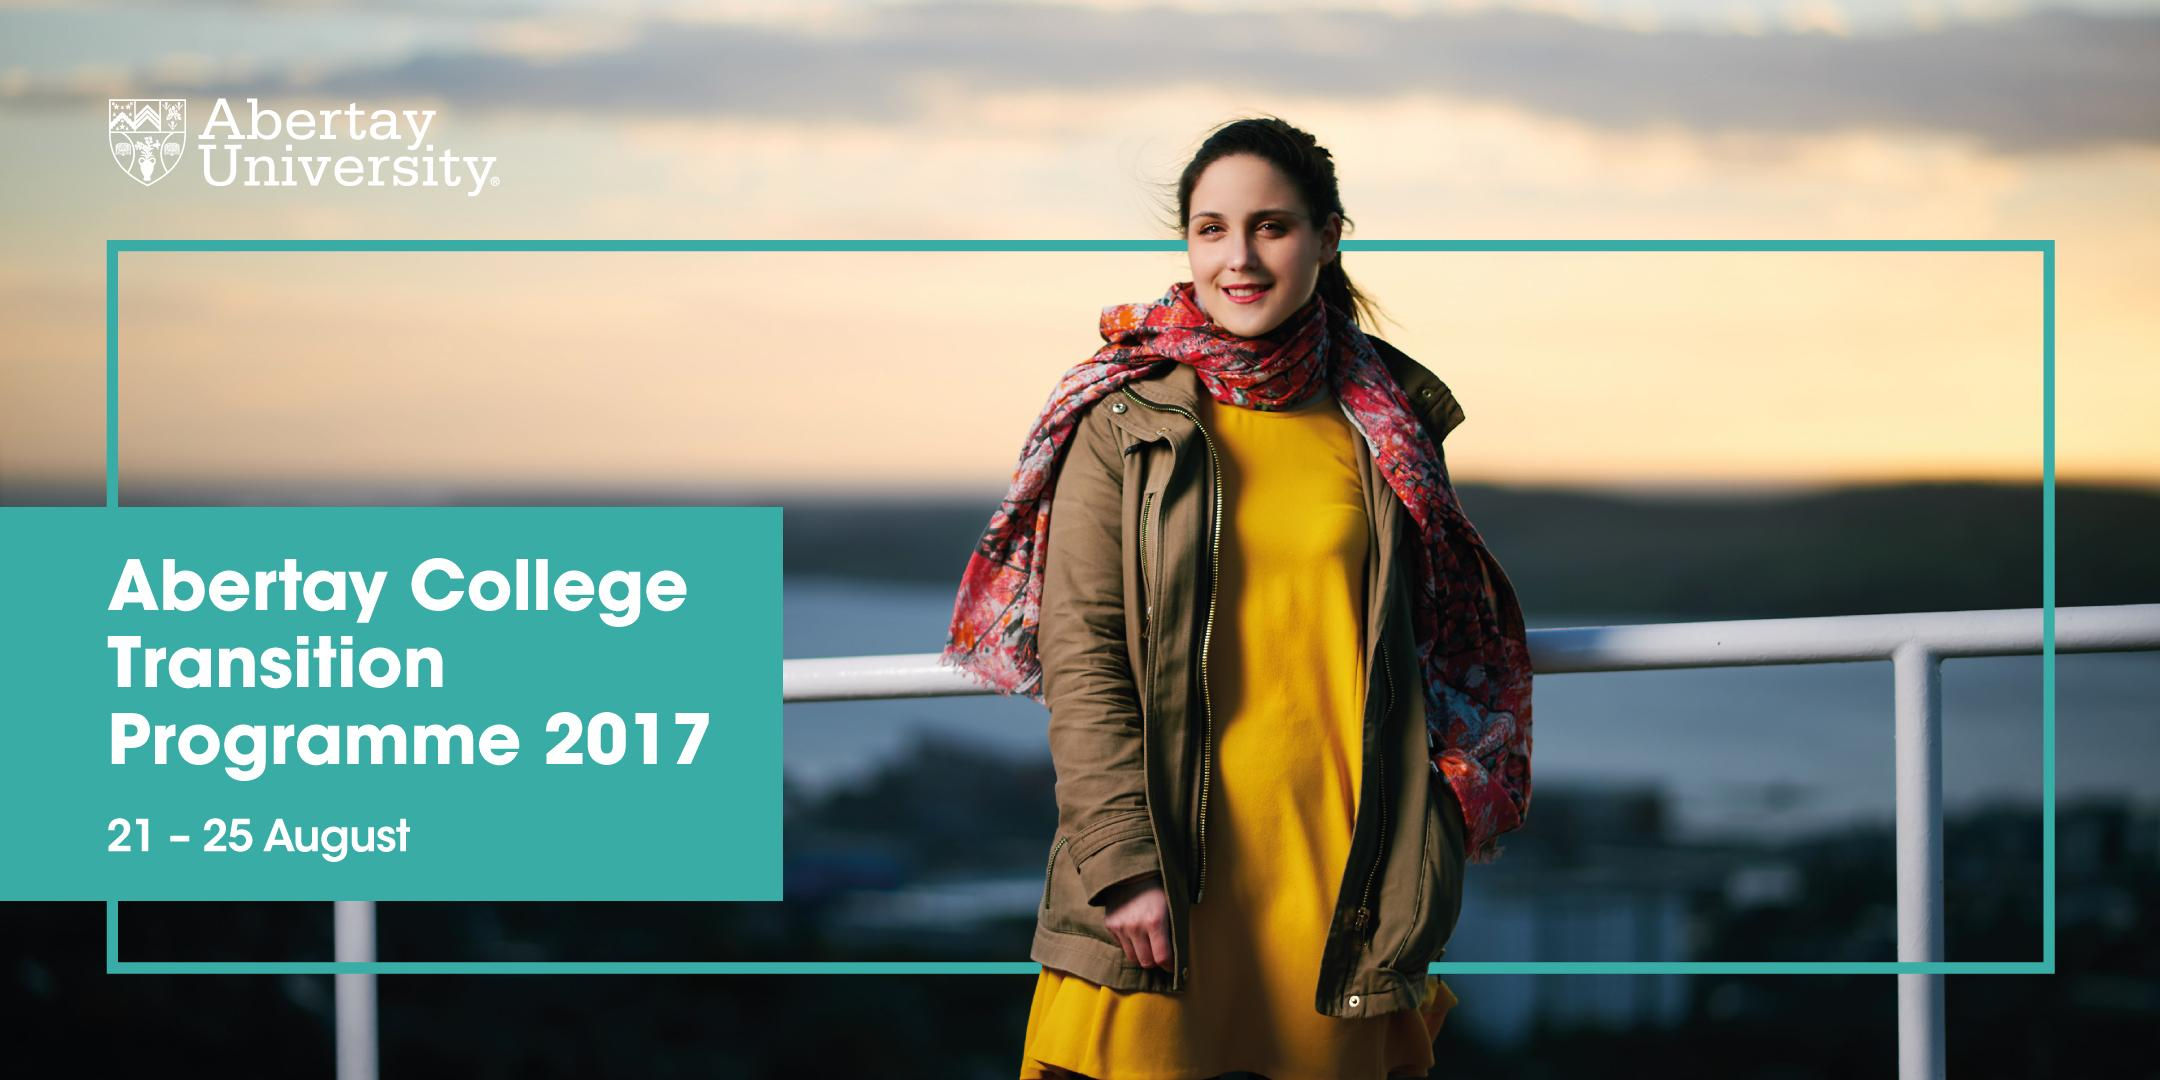 Abertay College Transition (ACT) Programme 20